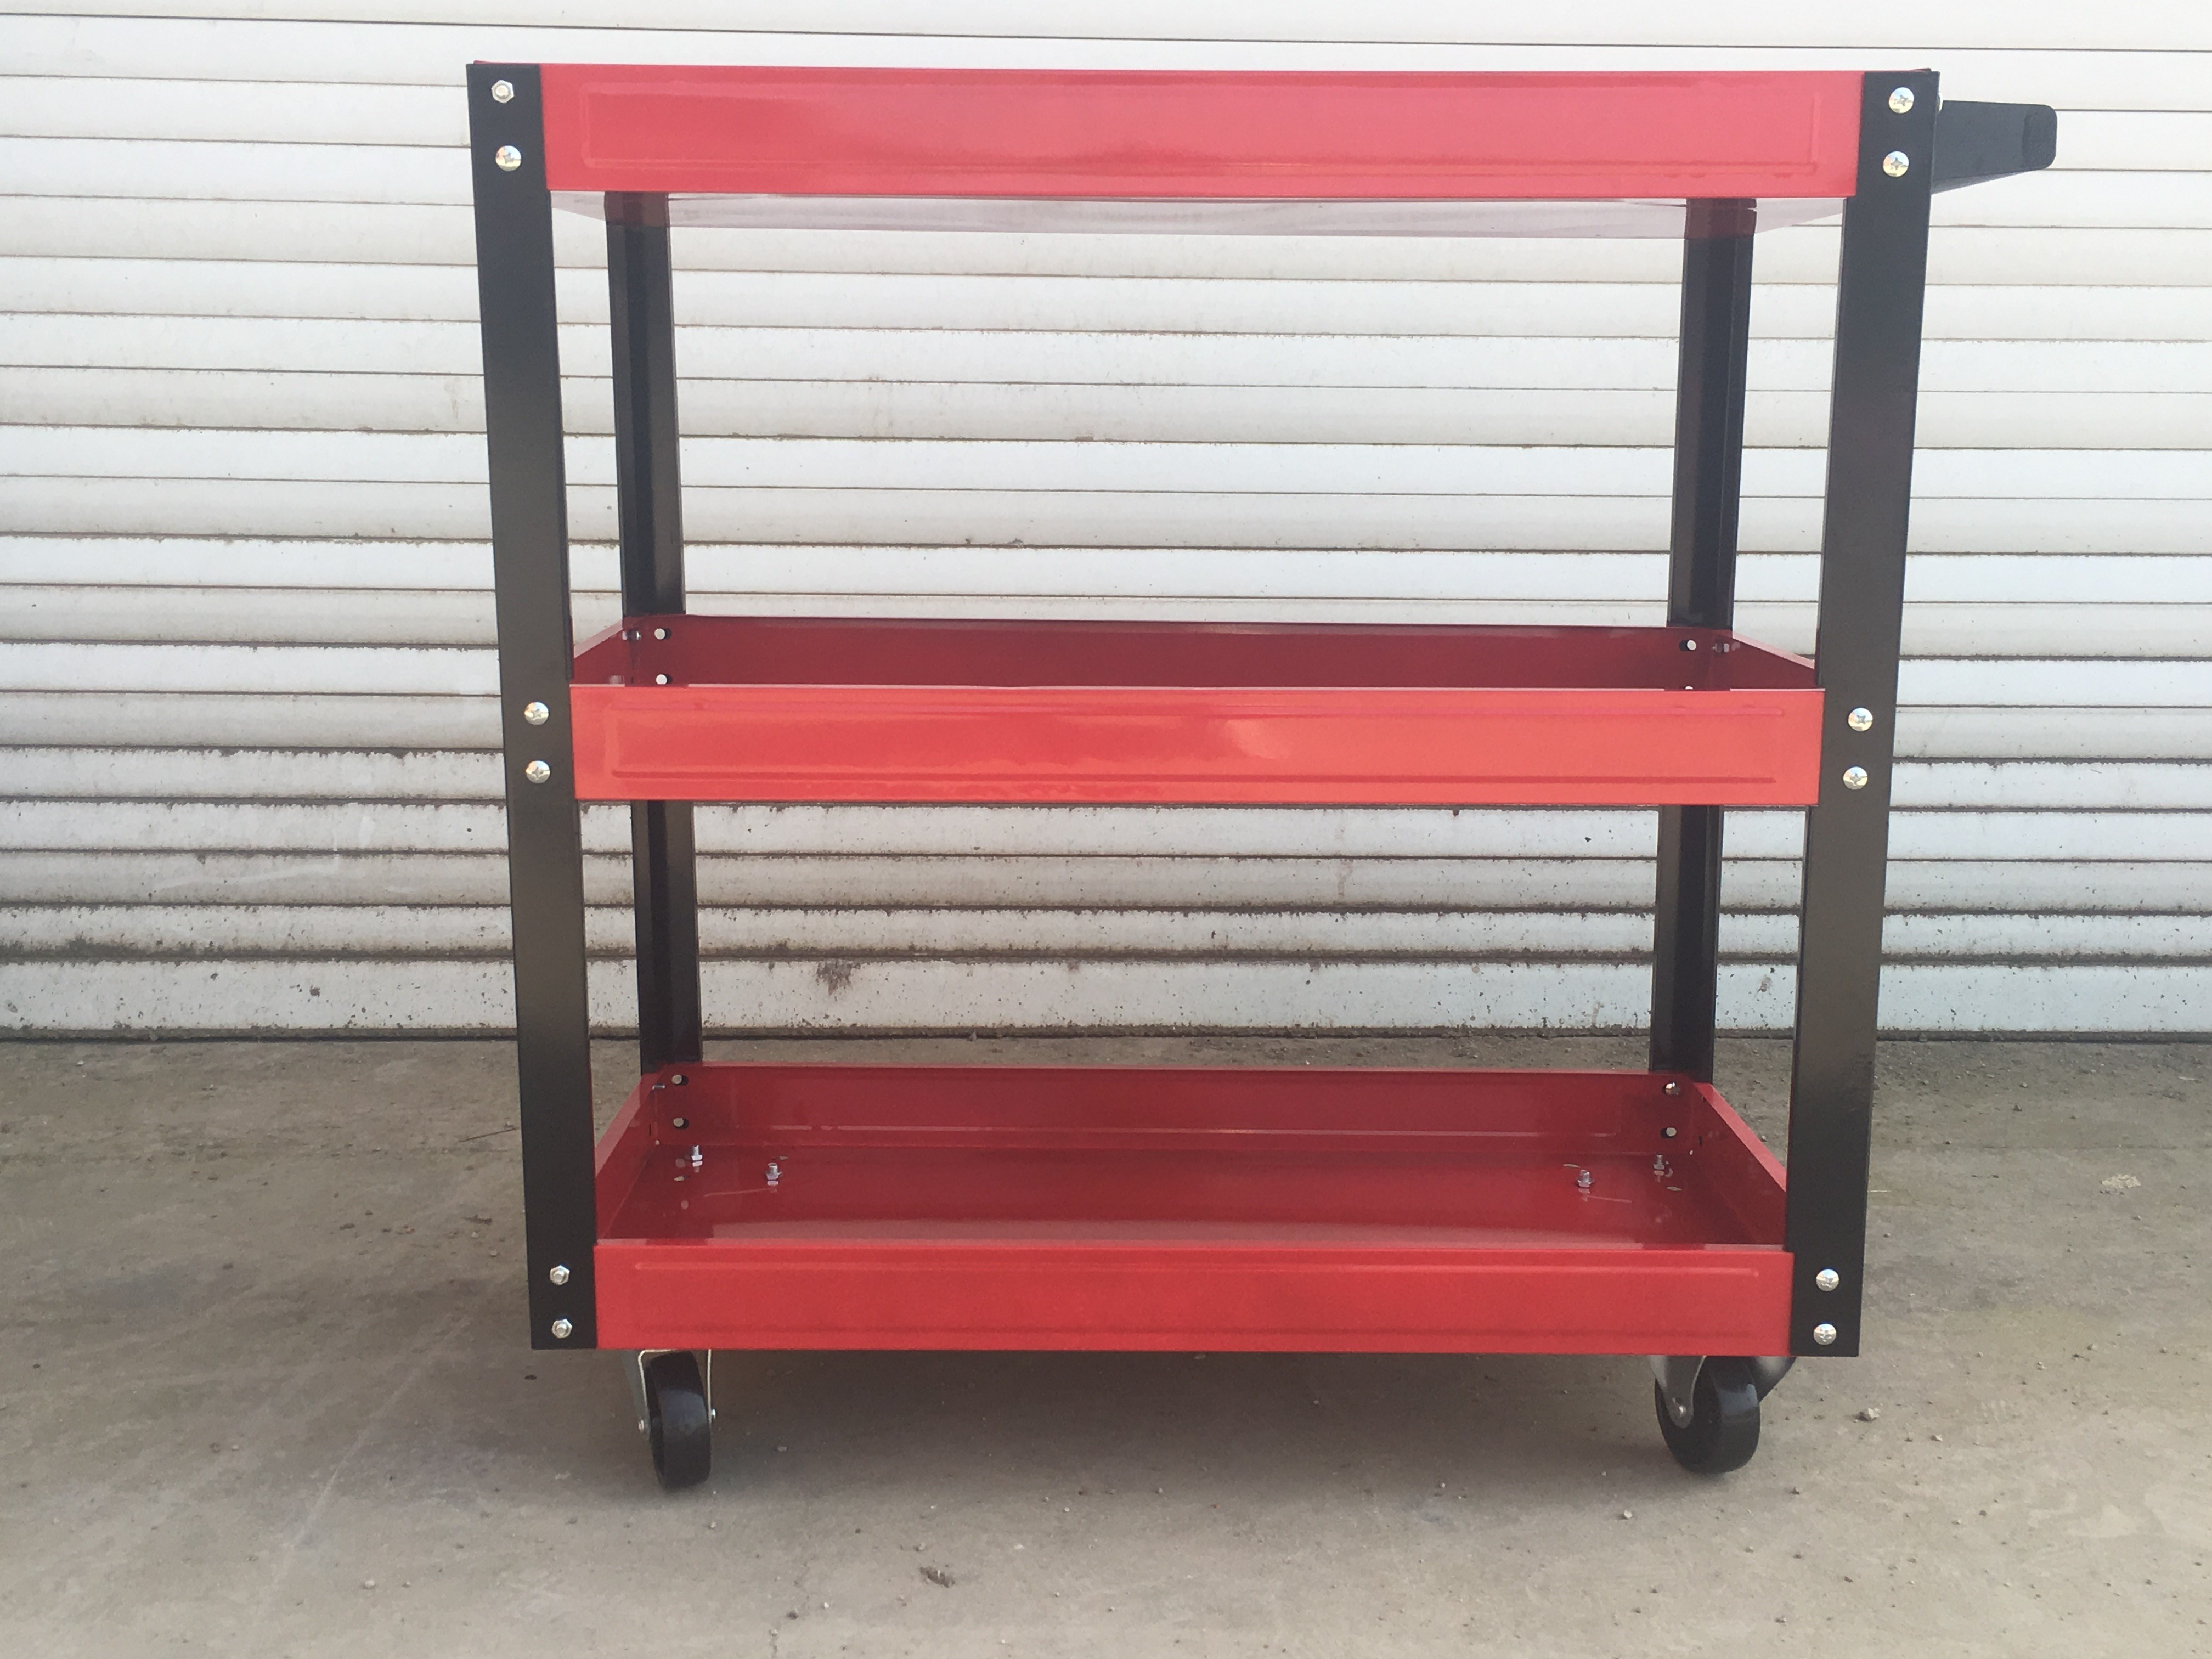 Tool car, three layer auto repair, hardware tool cabinet, shelf repair, assembly parts, car, multifunctional workshop, trolley